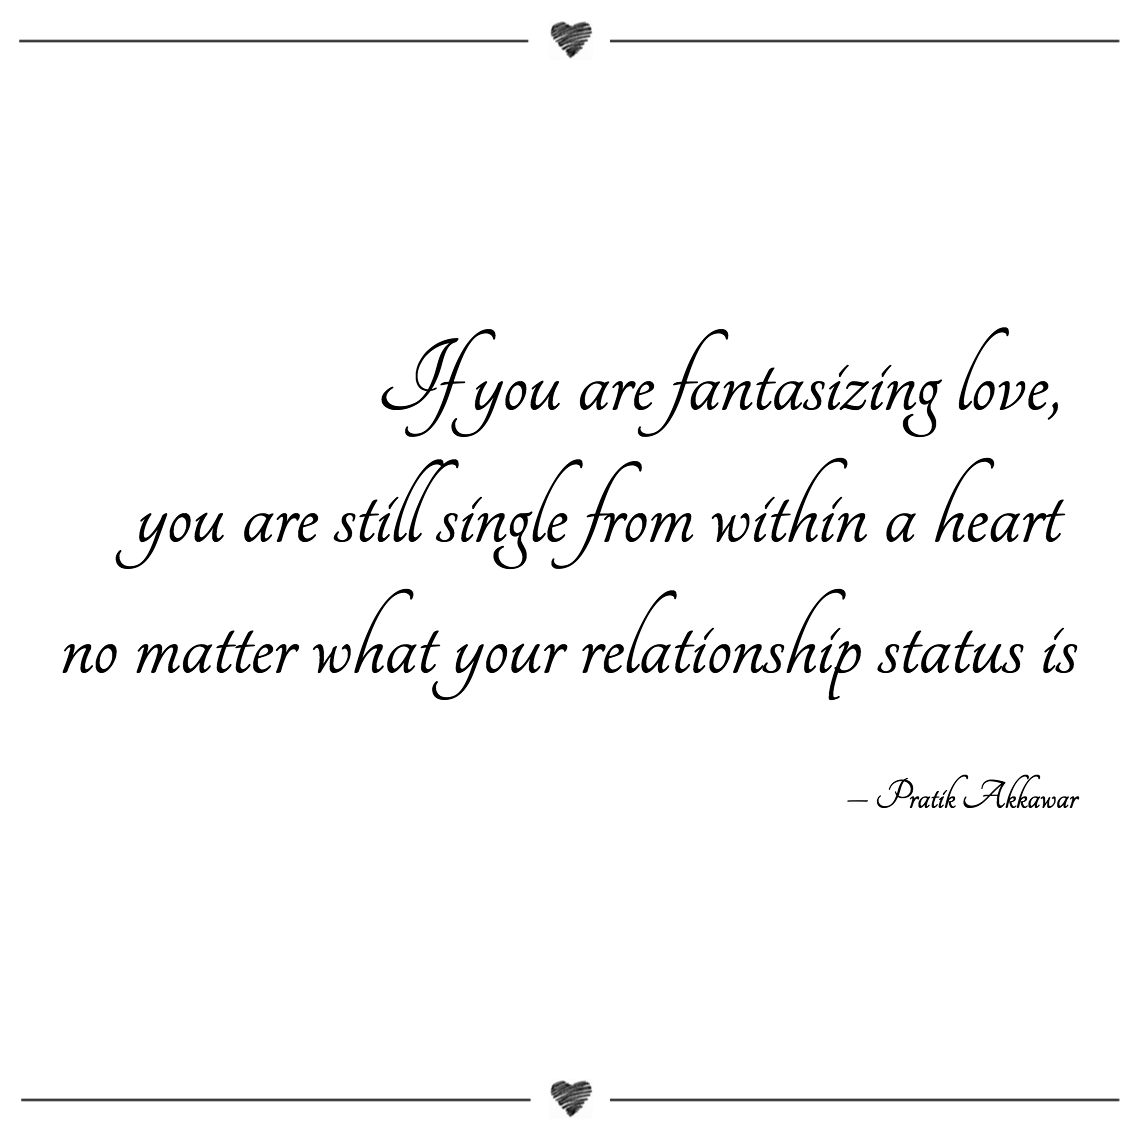 If you are fantasizing love, you are still single from within a heart no matter what your relationship status is pratik akkawar (1)